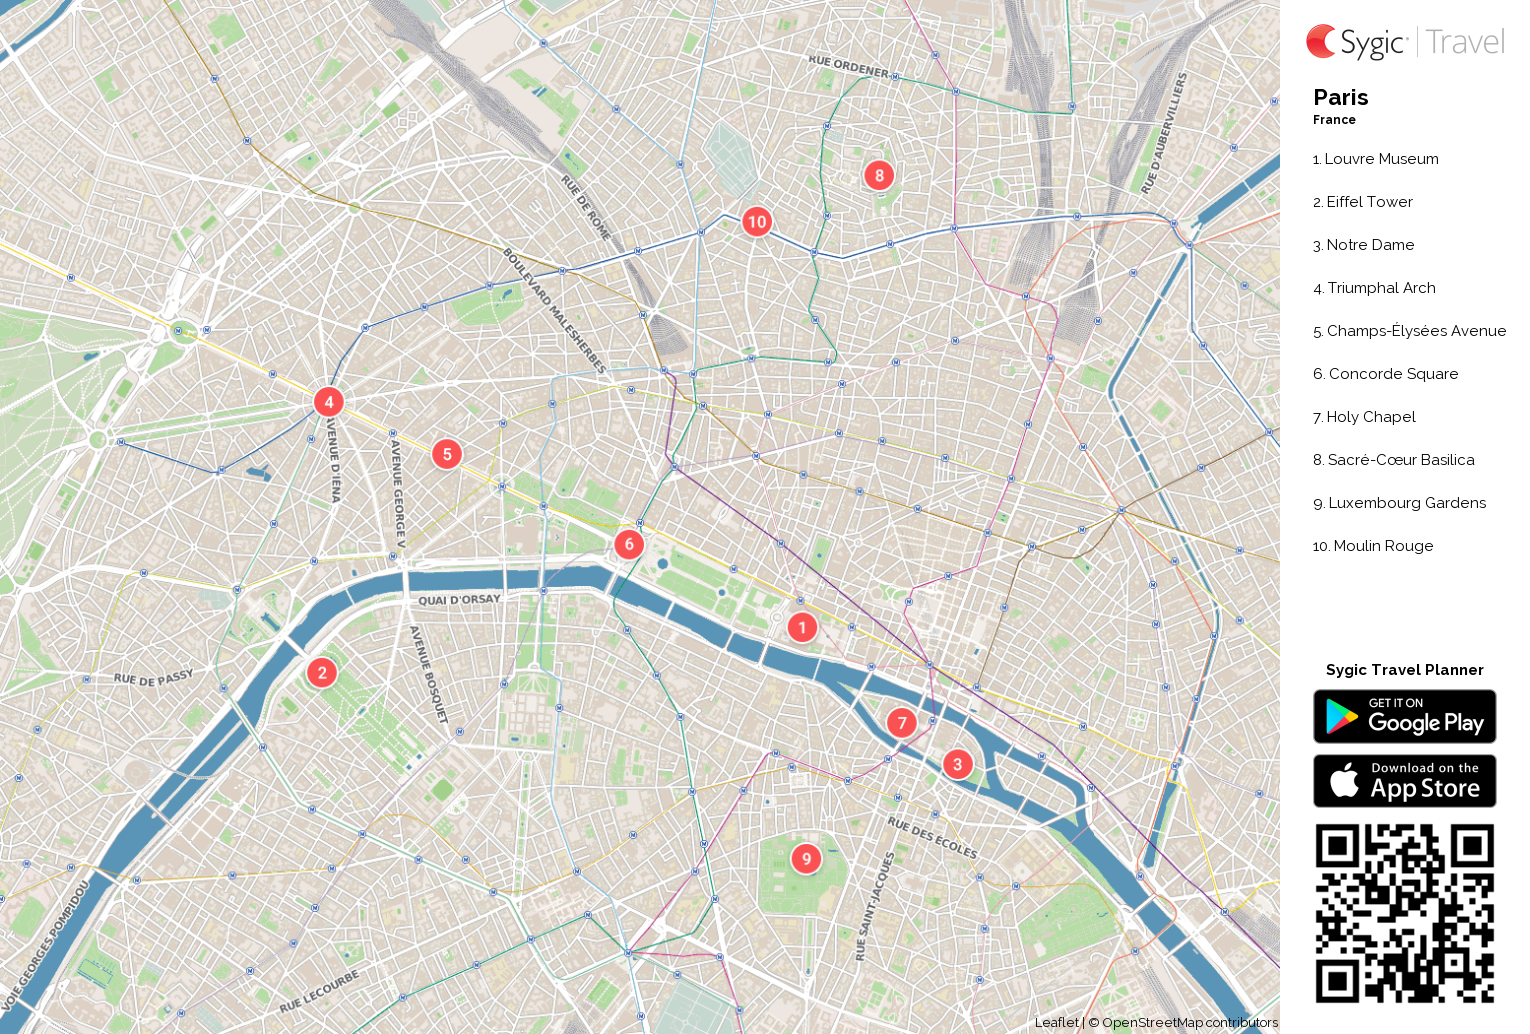 Download A Printable Paris Tourist Map Showing Top Sights And ...